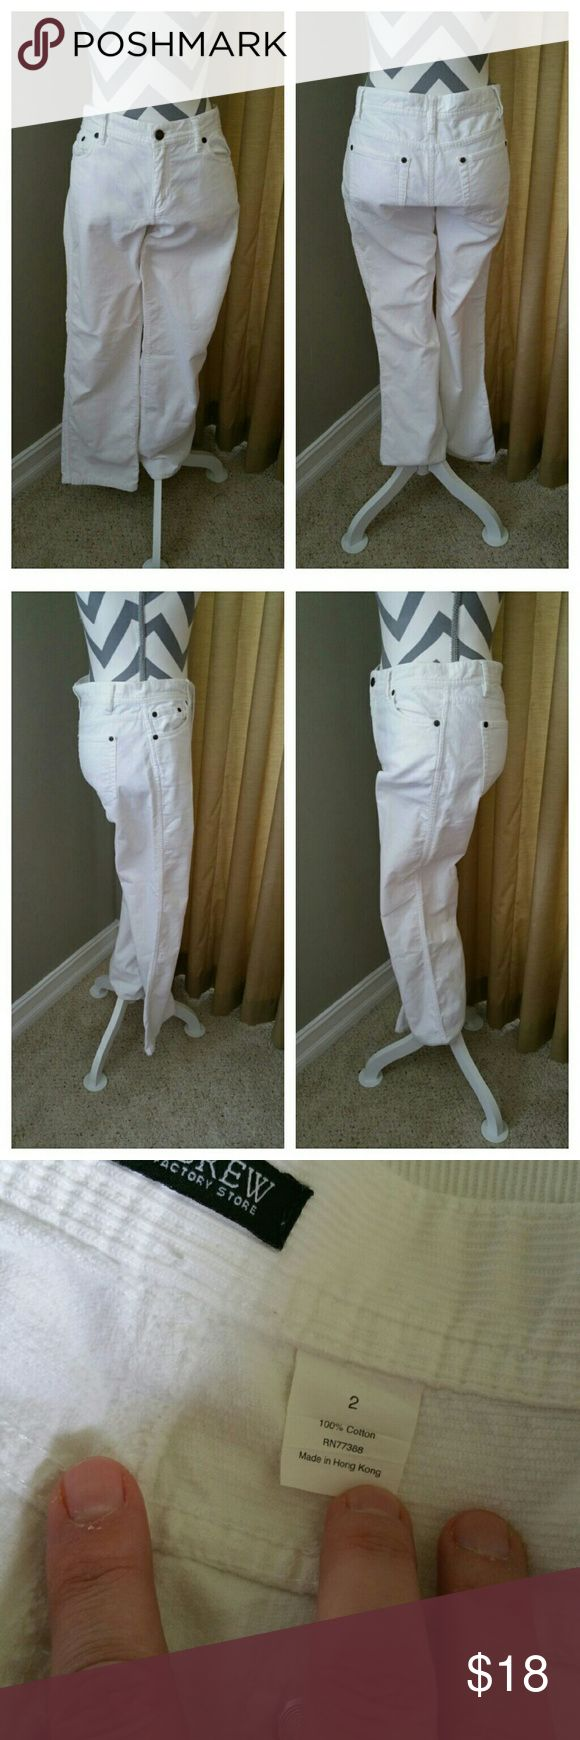 J. Crew Off White Corduroys J.Crew Off White Corduroys in EUC with no flaws. Great broken feel to them, not stiff at all. Measurements to come.... Located in Poshmark closet @taylord2covet. J. Crew Factory Pants